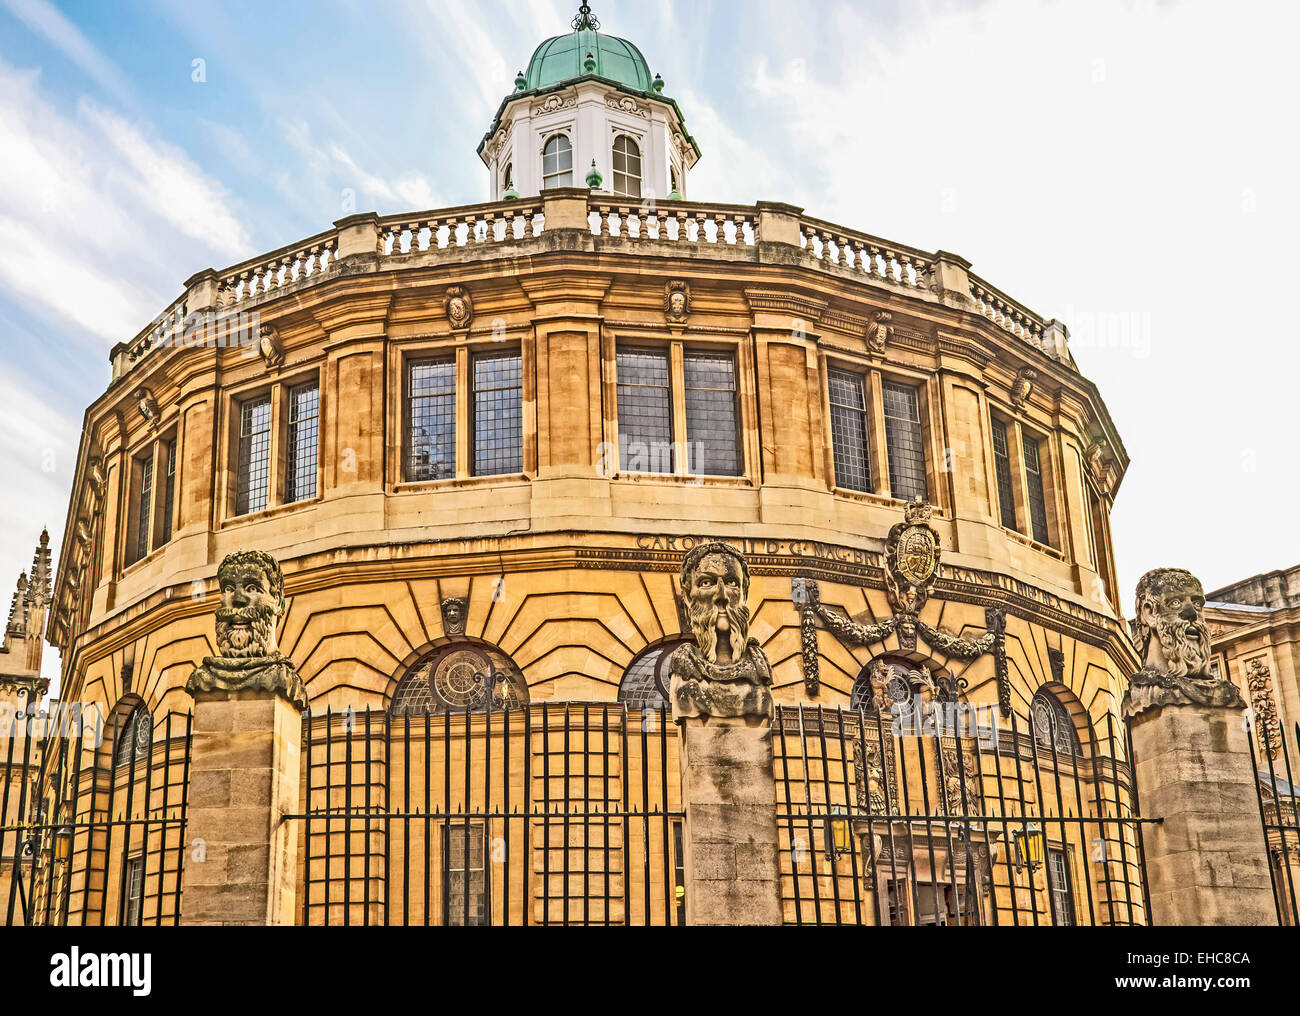 Busts of the Emperor's (or Apostles') Heads outside the Sheldonian Theatre in Oxford - Stock Image